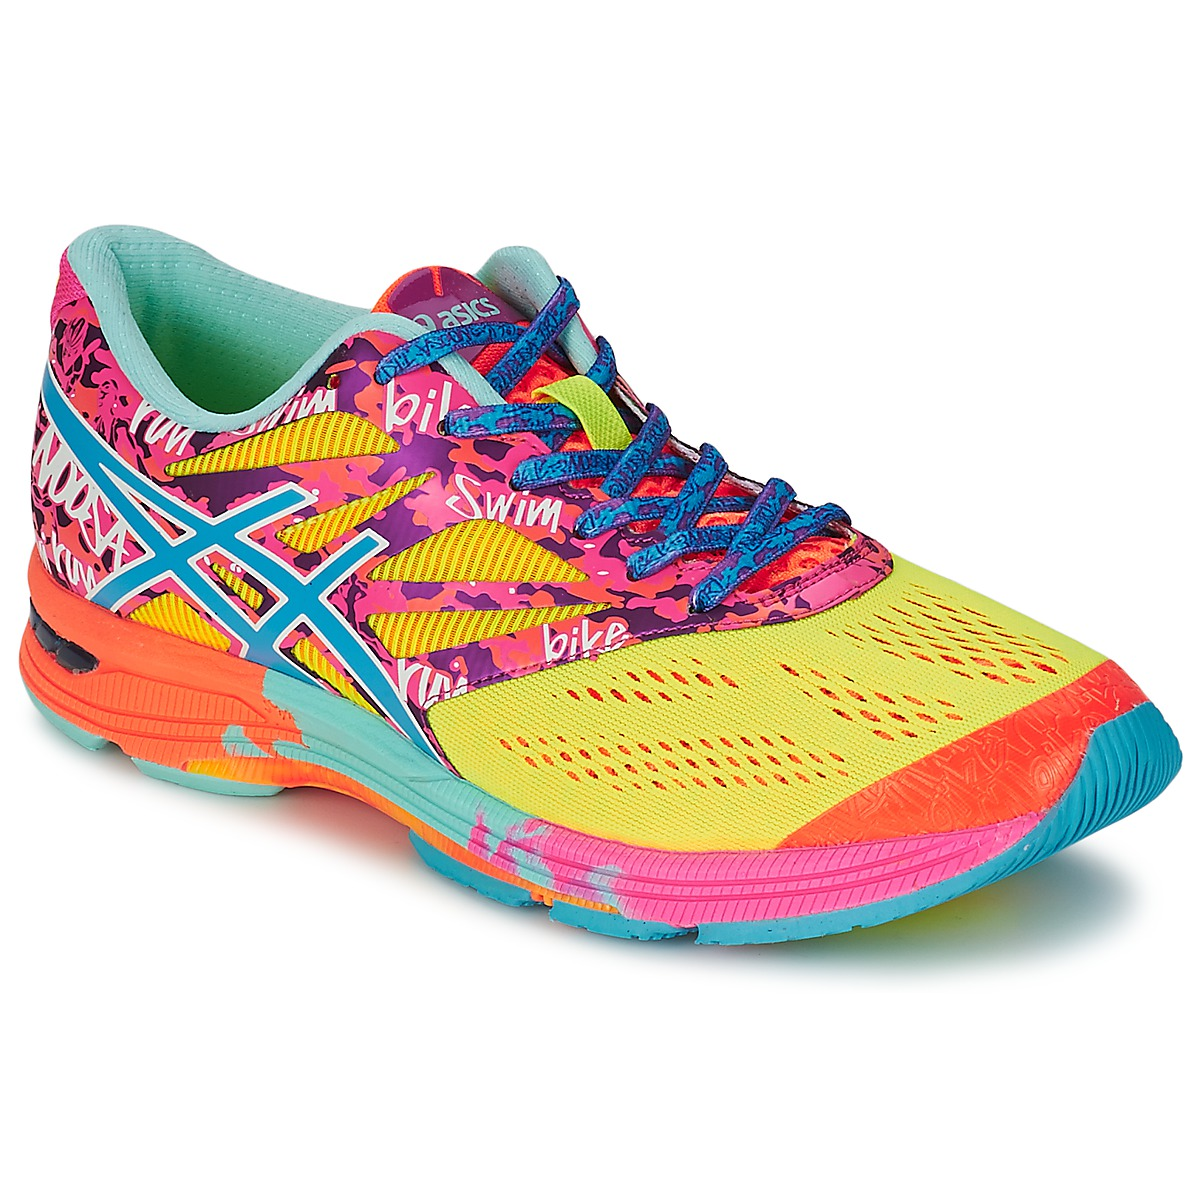 Chaussures-de-running Asics GEL-NOOSA TRI 10 Multicolore